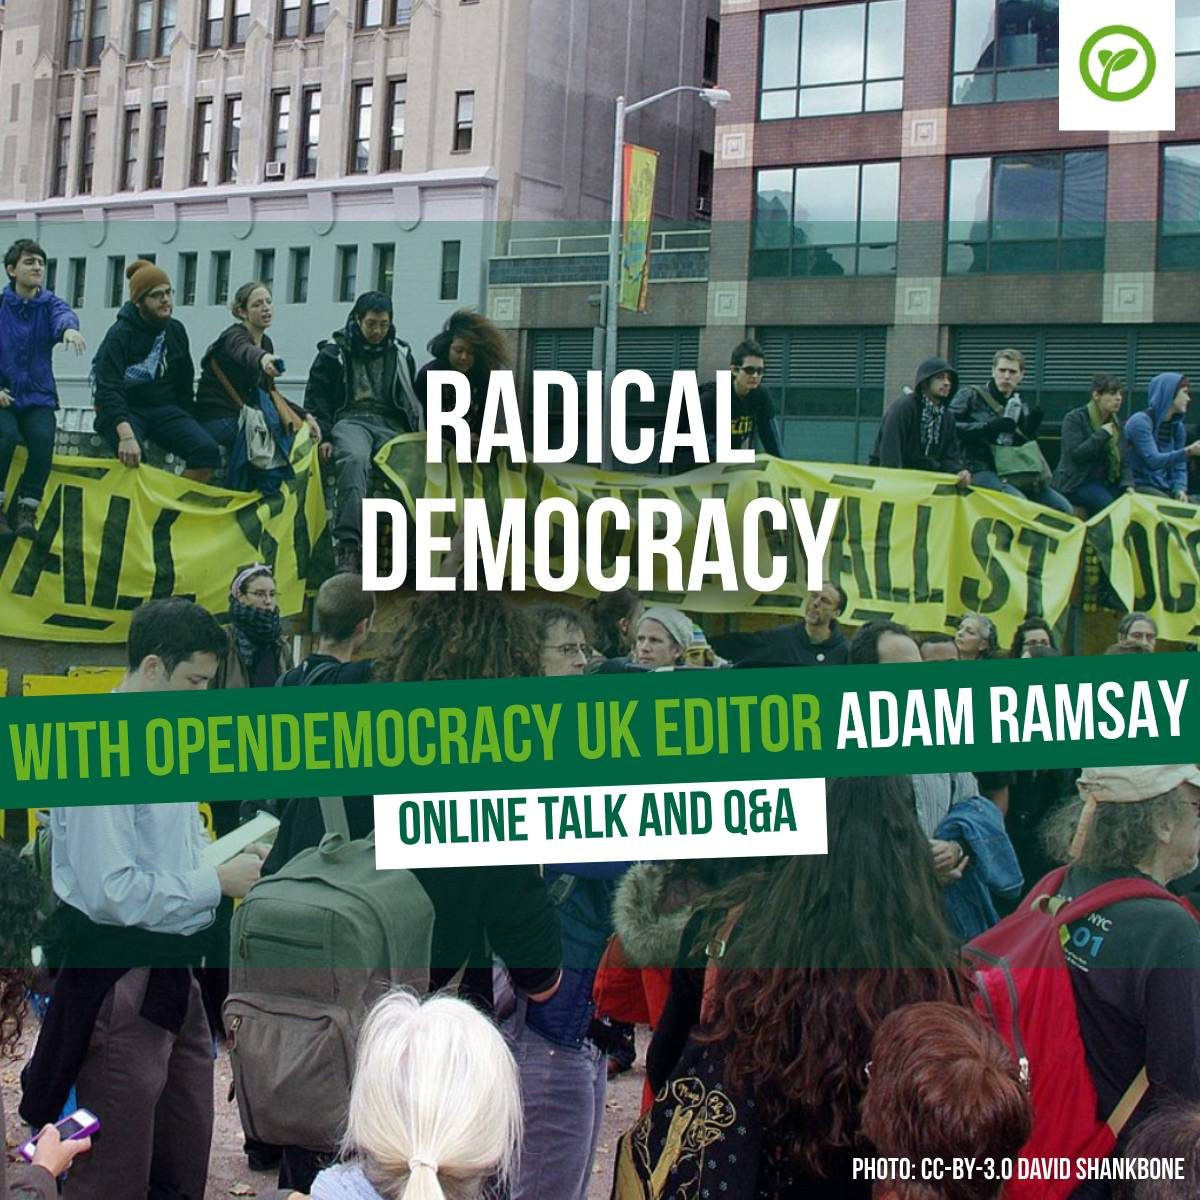 Radical Democracy. With Open Democracy UK editor Adam Ramsay. Online Talk and Q&A. Photo: CC-by-3.0 David Shankbone